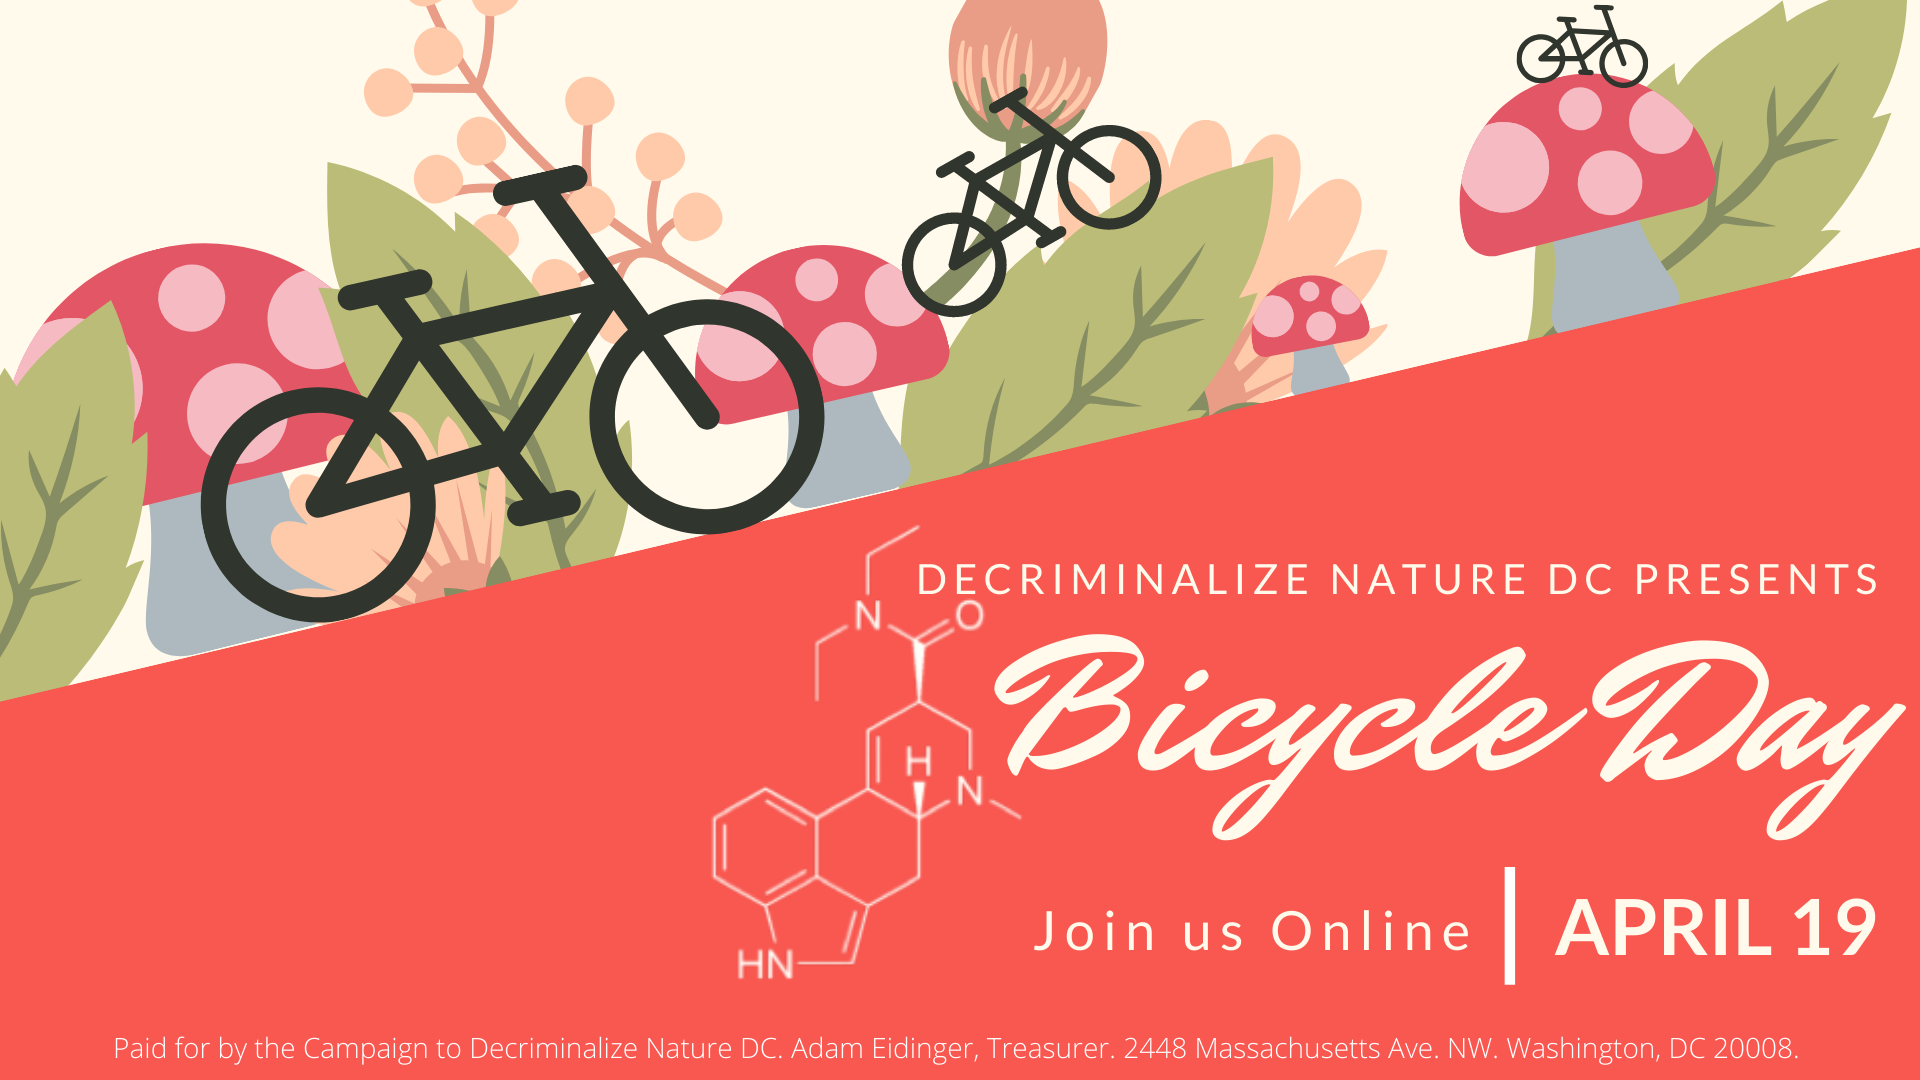 Join us for Bicycle Day!